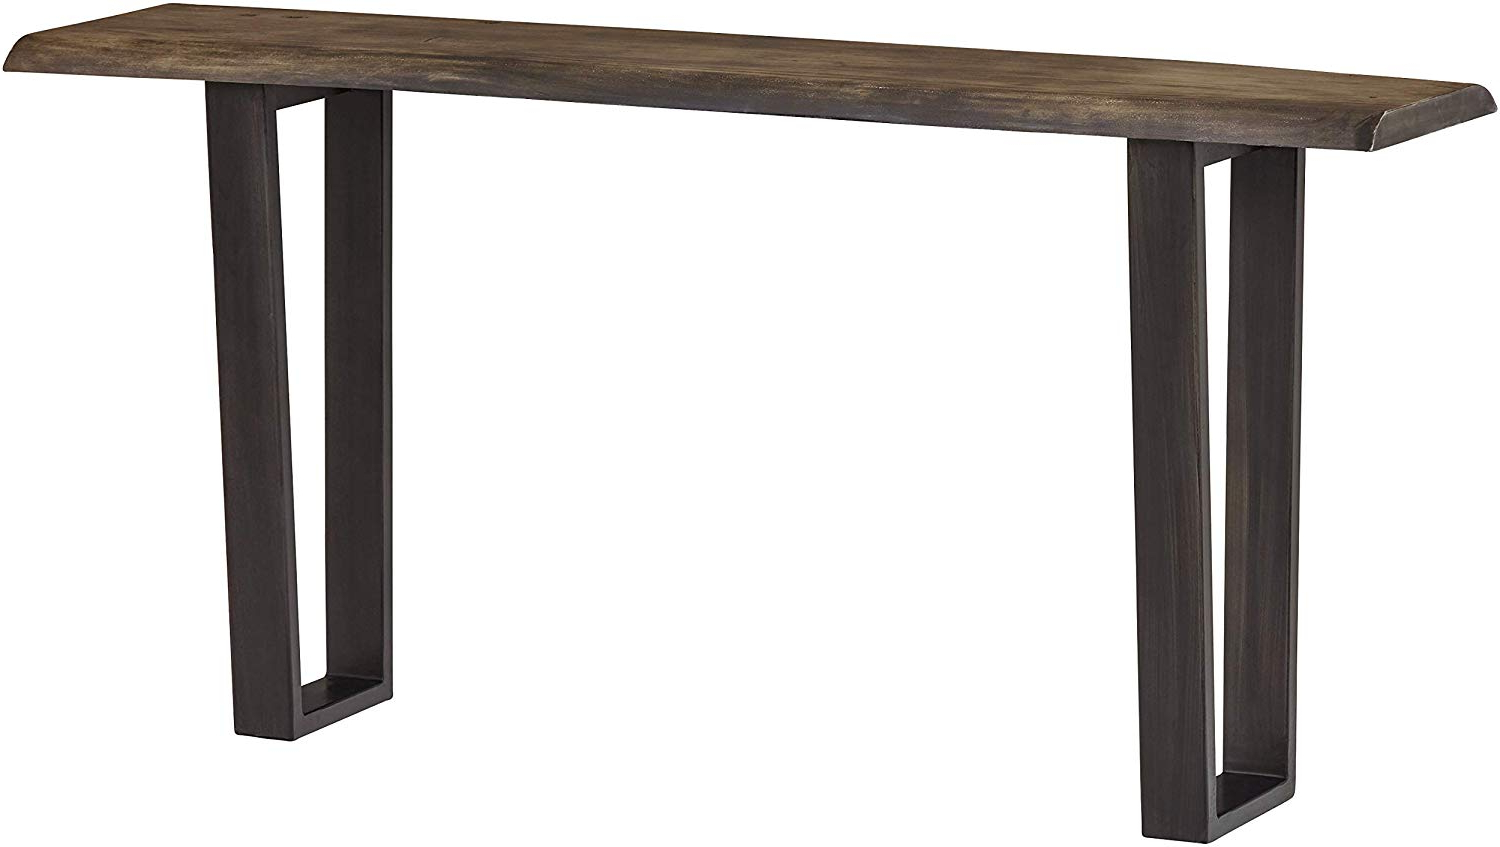 "Well Known Acacia Wood Top Dining Tables With Iron Legs On Raw Metal Inside Stone & Beam Garrett Rustic Acacia Wood Sofa Table With Iron Legs, 60""w,  Gray And Raw Metal (View 2 of 25)"